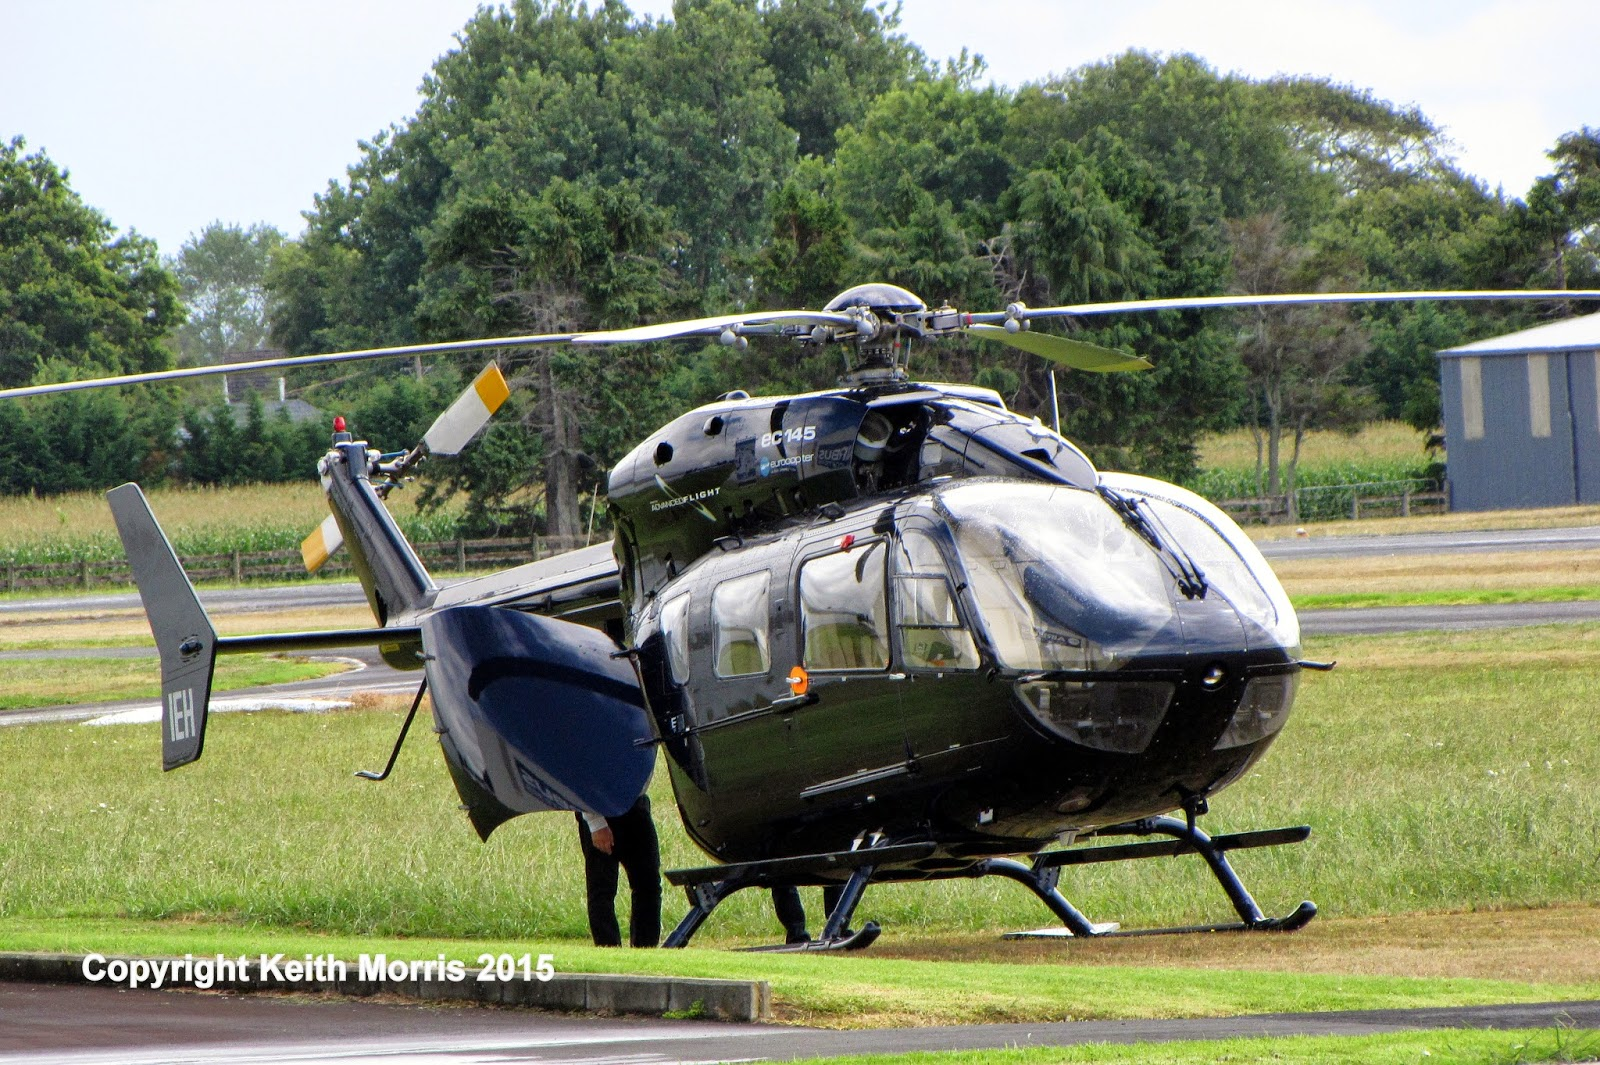 Helicopter 117